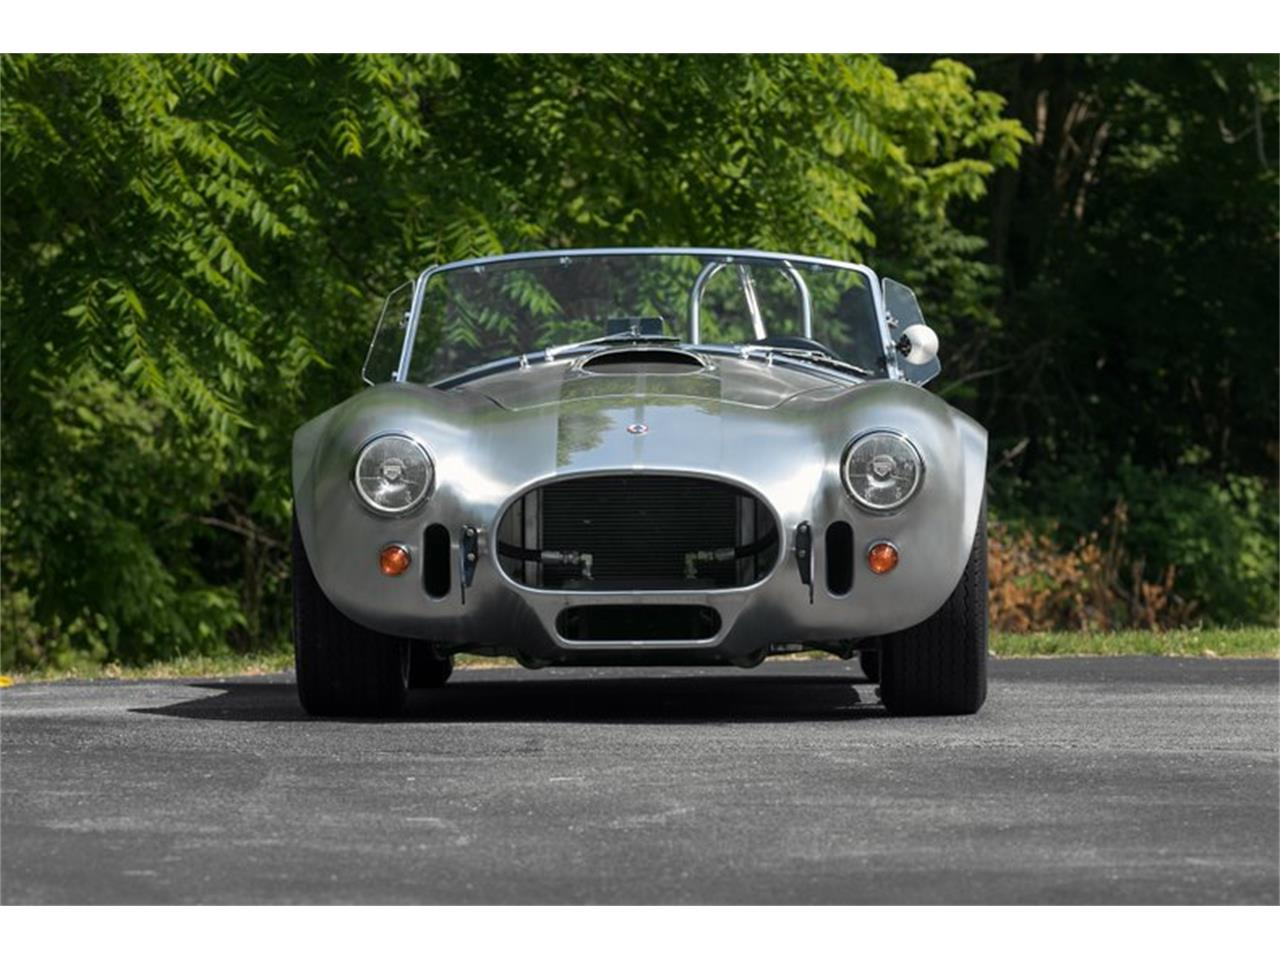 Large Picture of 1965 Cobra located in St. Charles Missouri - $179,995.00 Offered by Fast Lane Classic Cars Inc. - OAK6